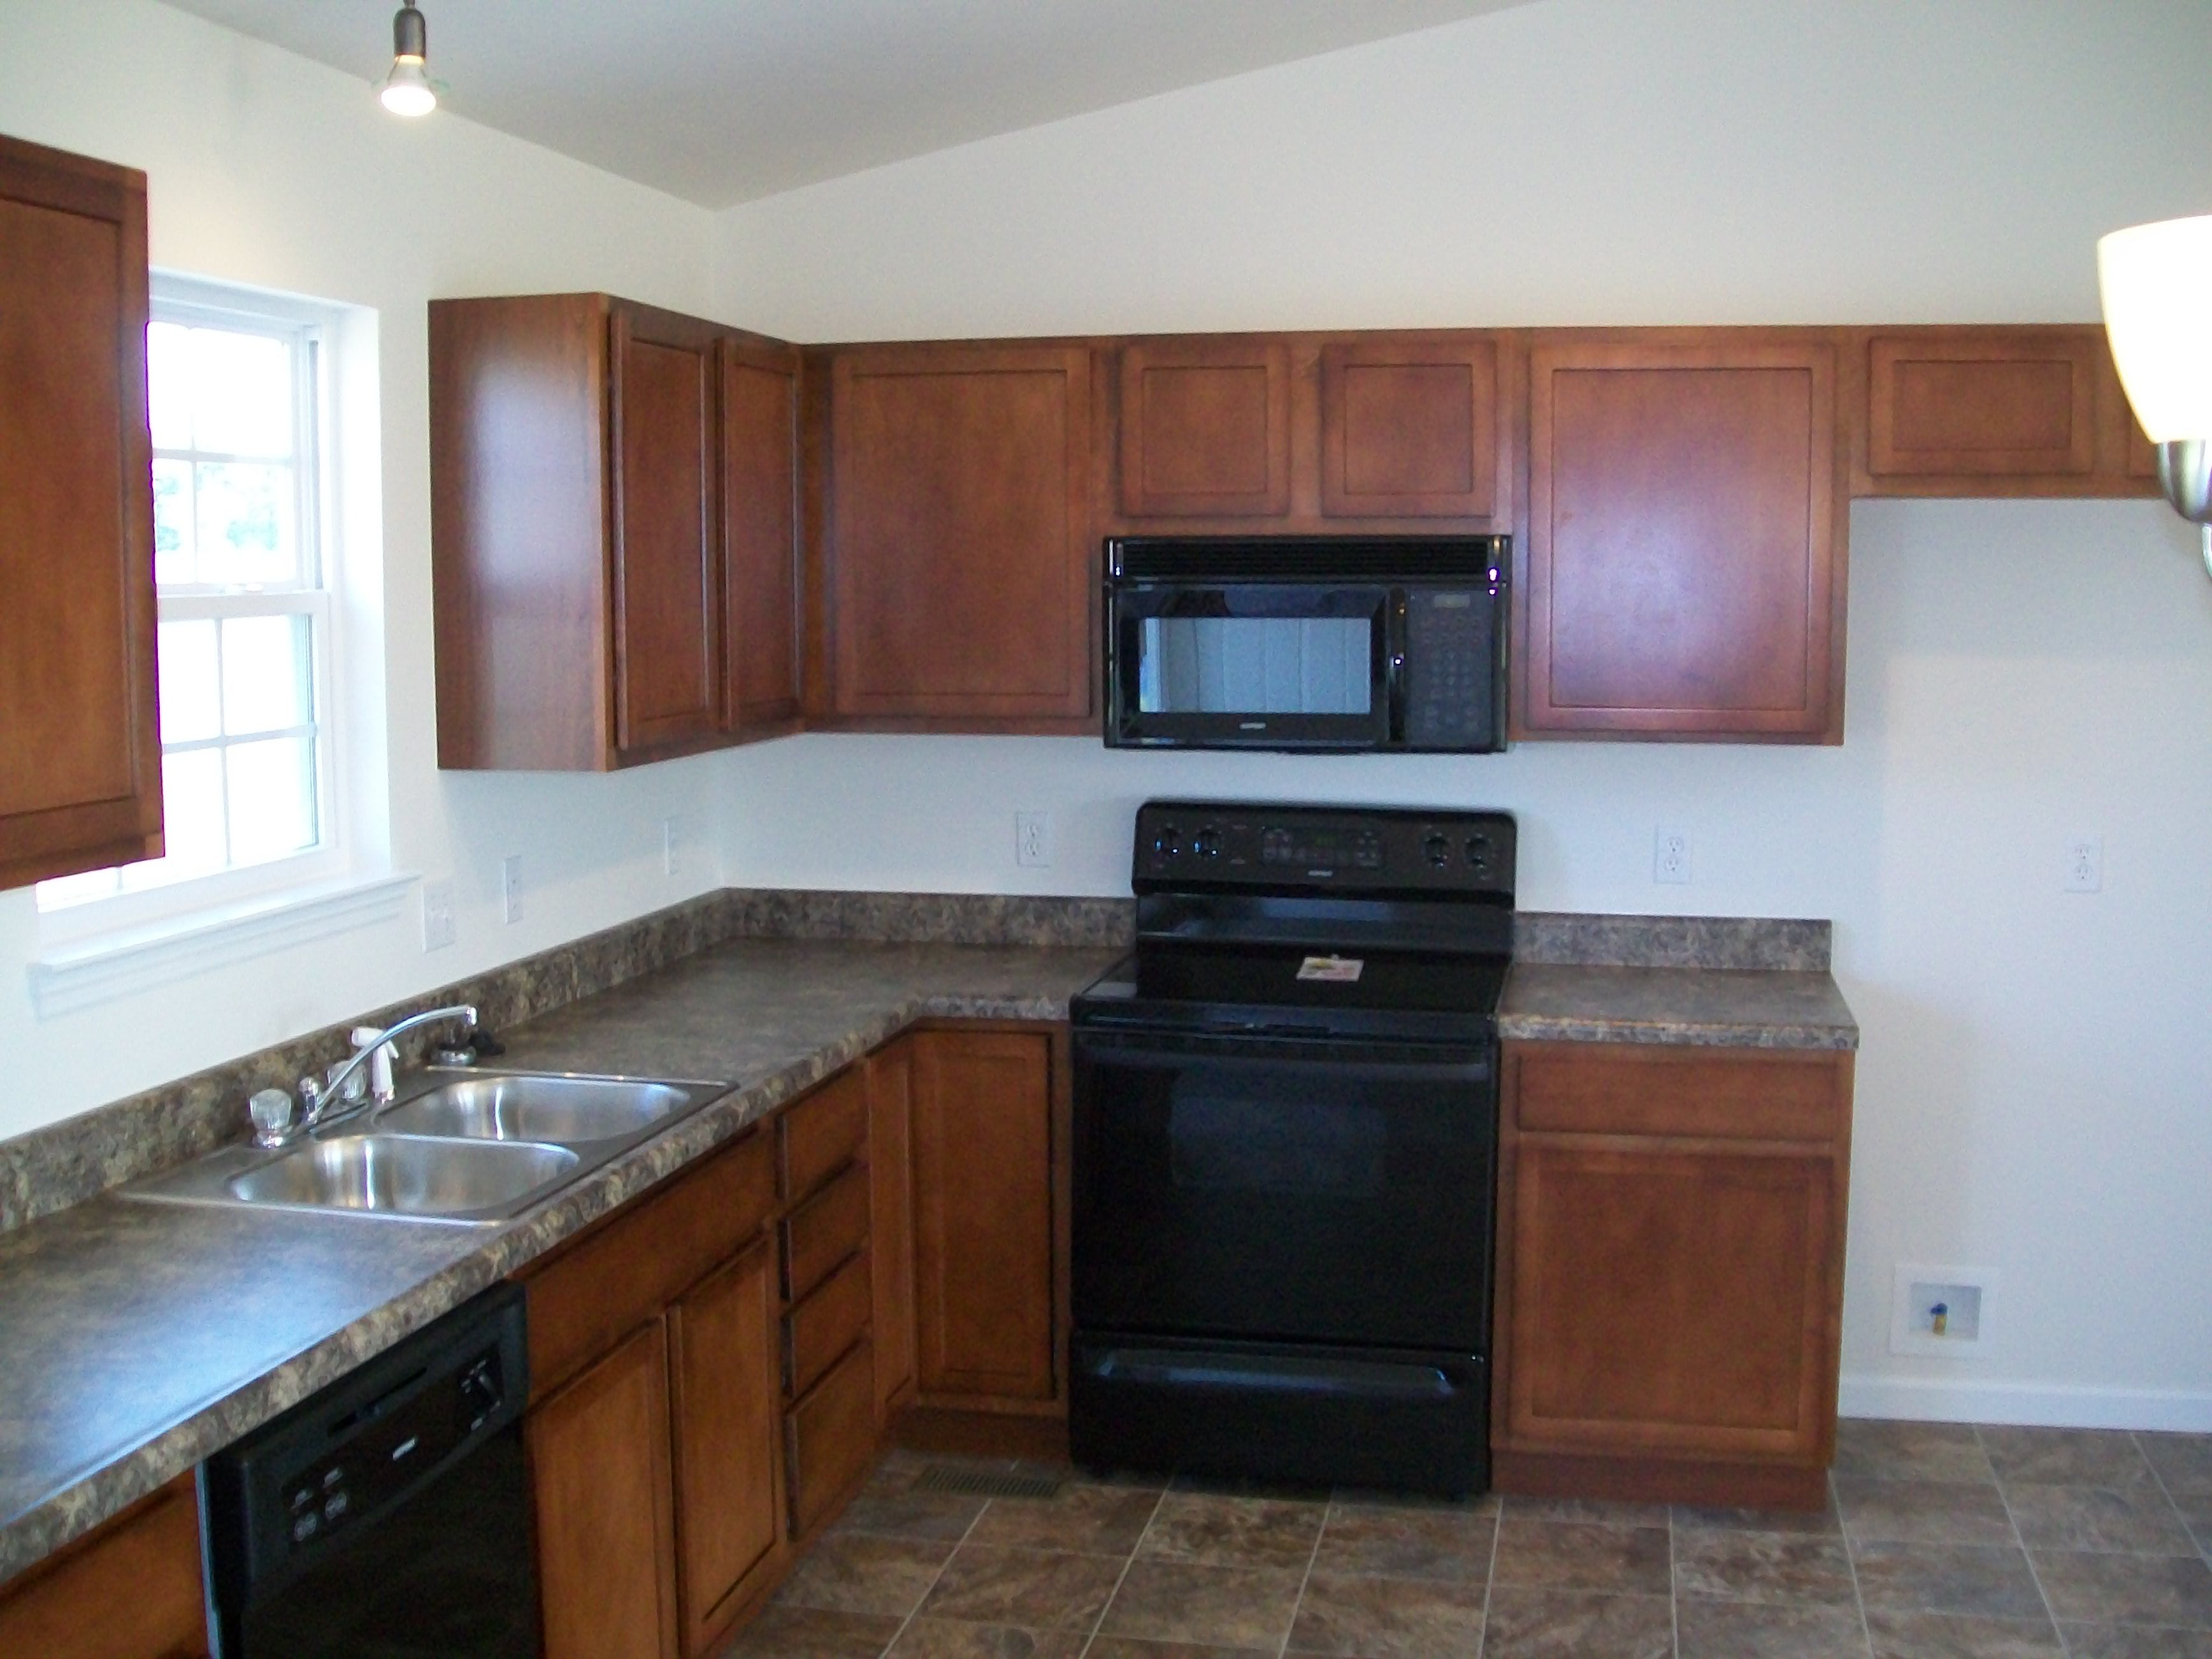 Kitchen featured in The Casco By Cannon Builders, Inc.  in St. Louis, MO